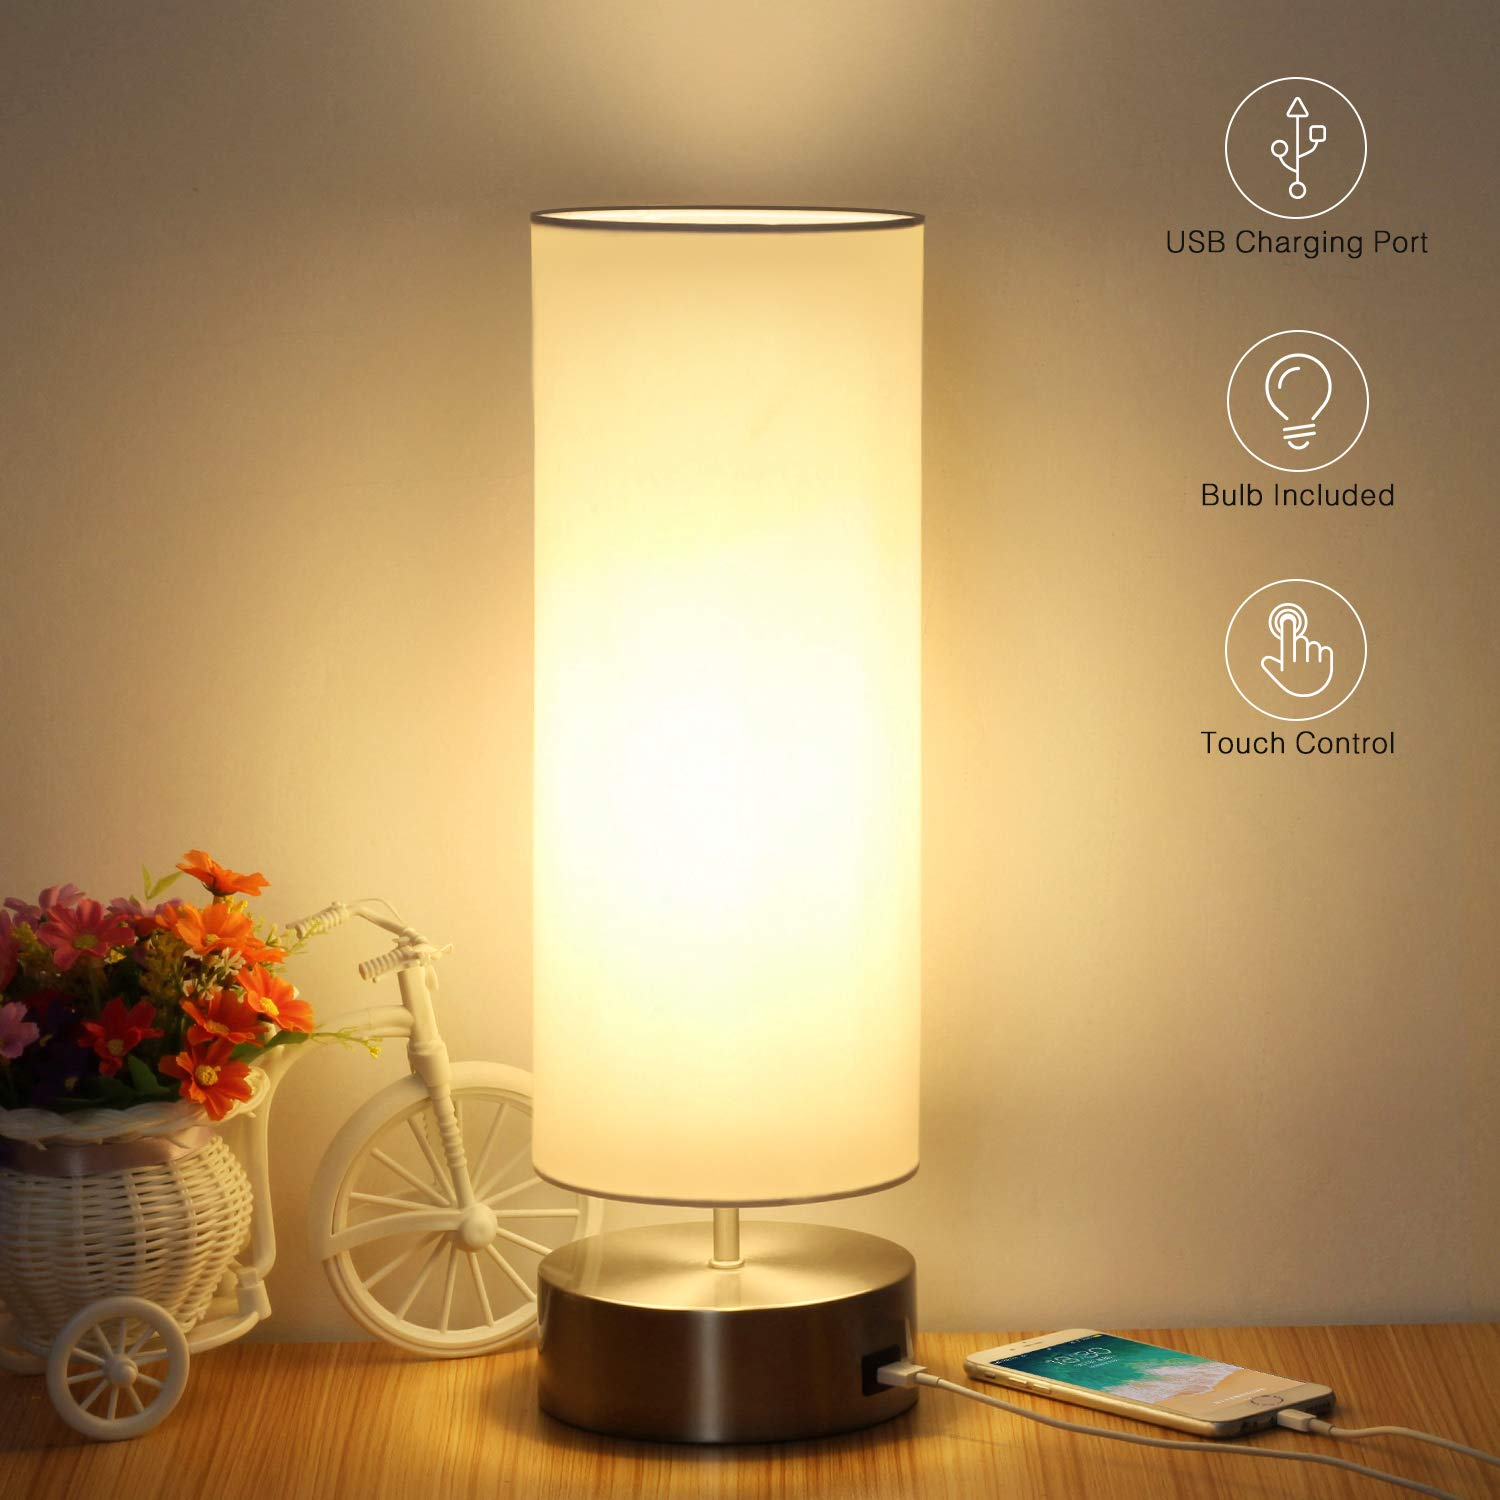 Boncoo Touch Control Table Lamp Vintage Desk Lamp Small Industrial Touch Light Bedside Dimmable Nightstand Lamp Steampunk Accent Light Edison Lamp Base Antique Night Light For Living Room Bedroom Lighting Ceiling